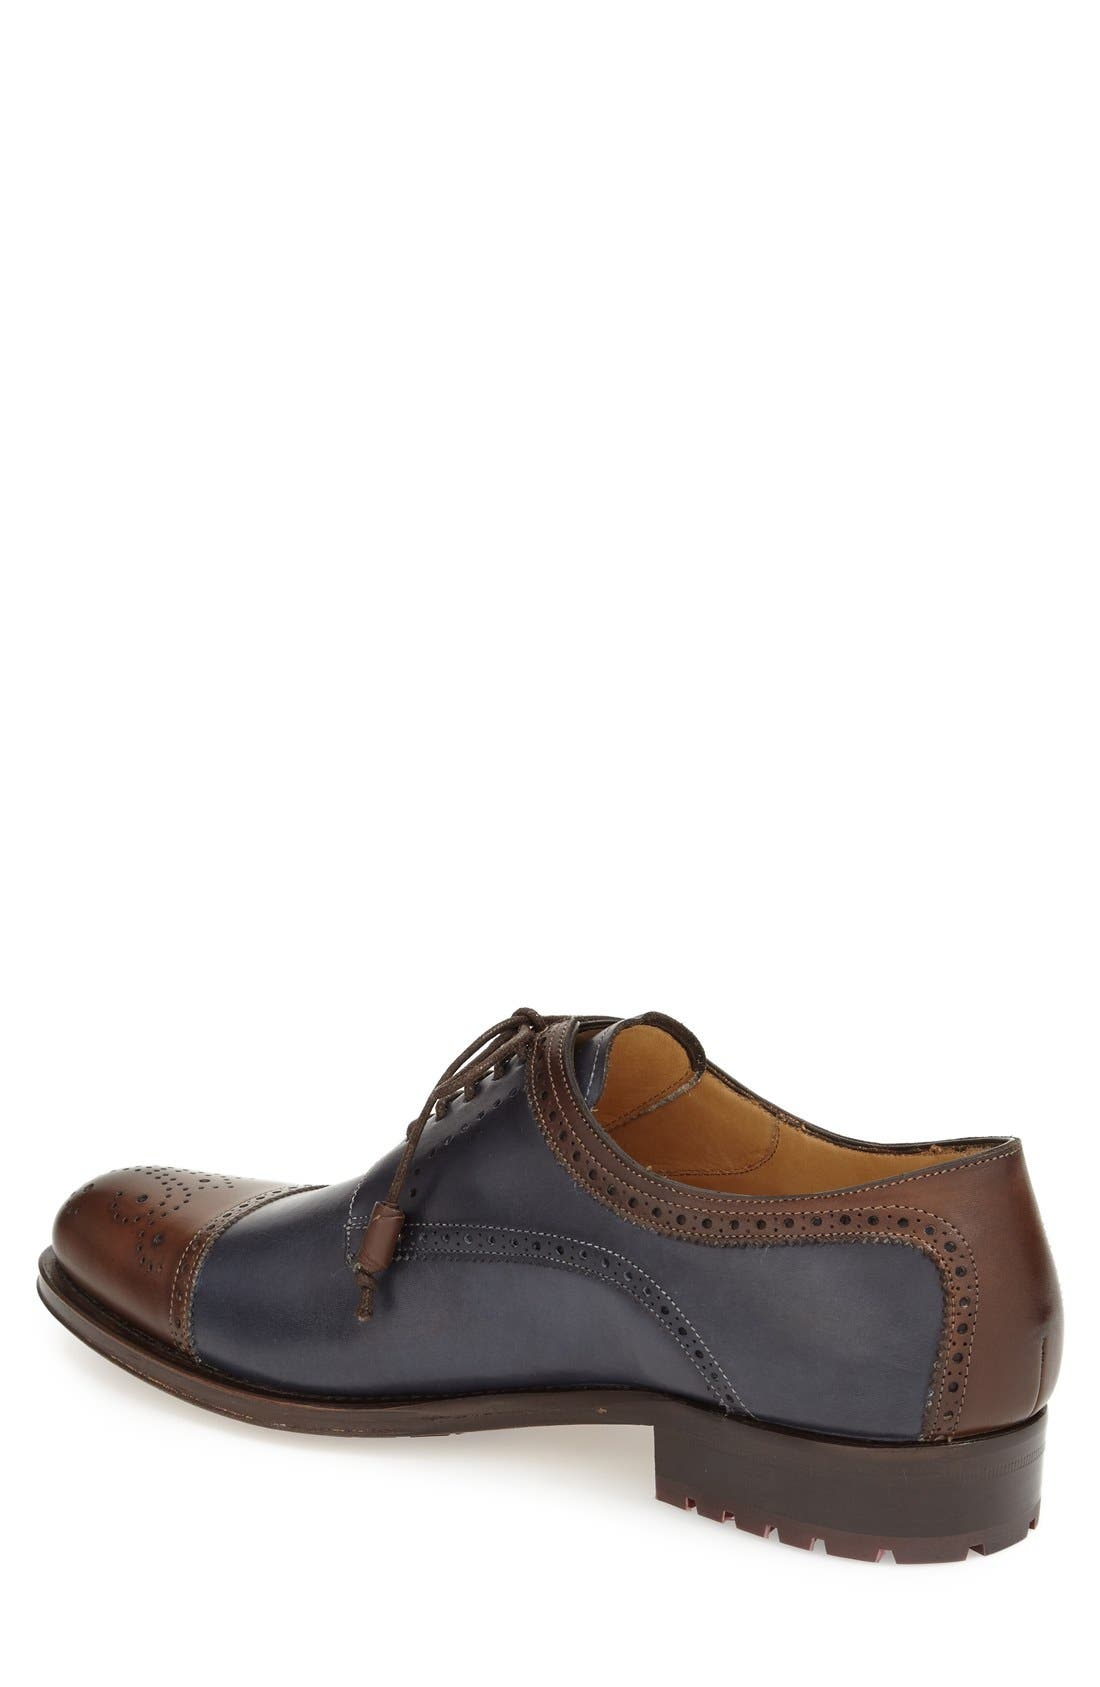 'Carlino' Cap Toe Oxford,                             Alternate thumbnail 2, color,                             BROWN/ BLUE